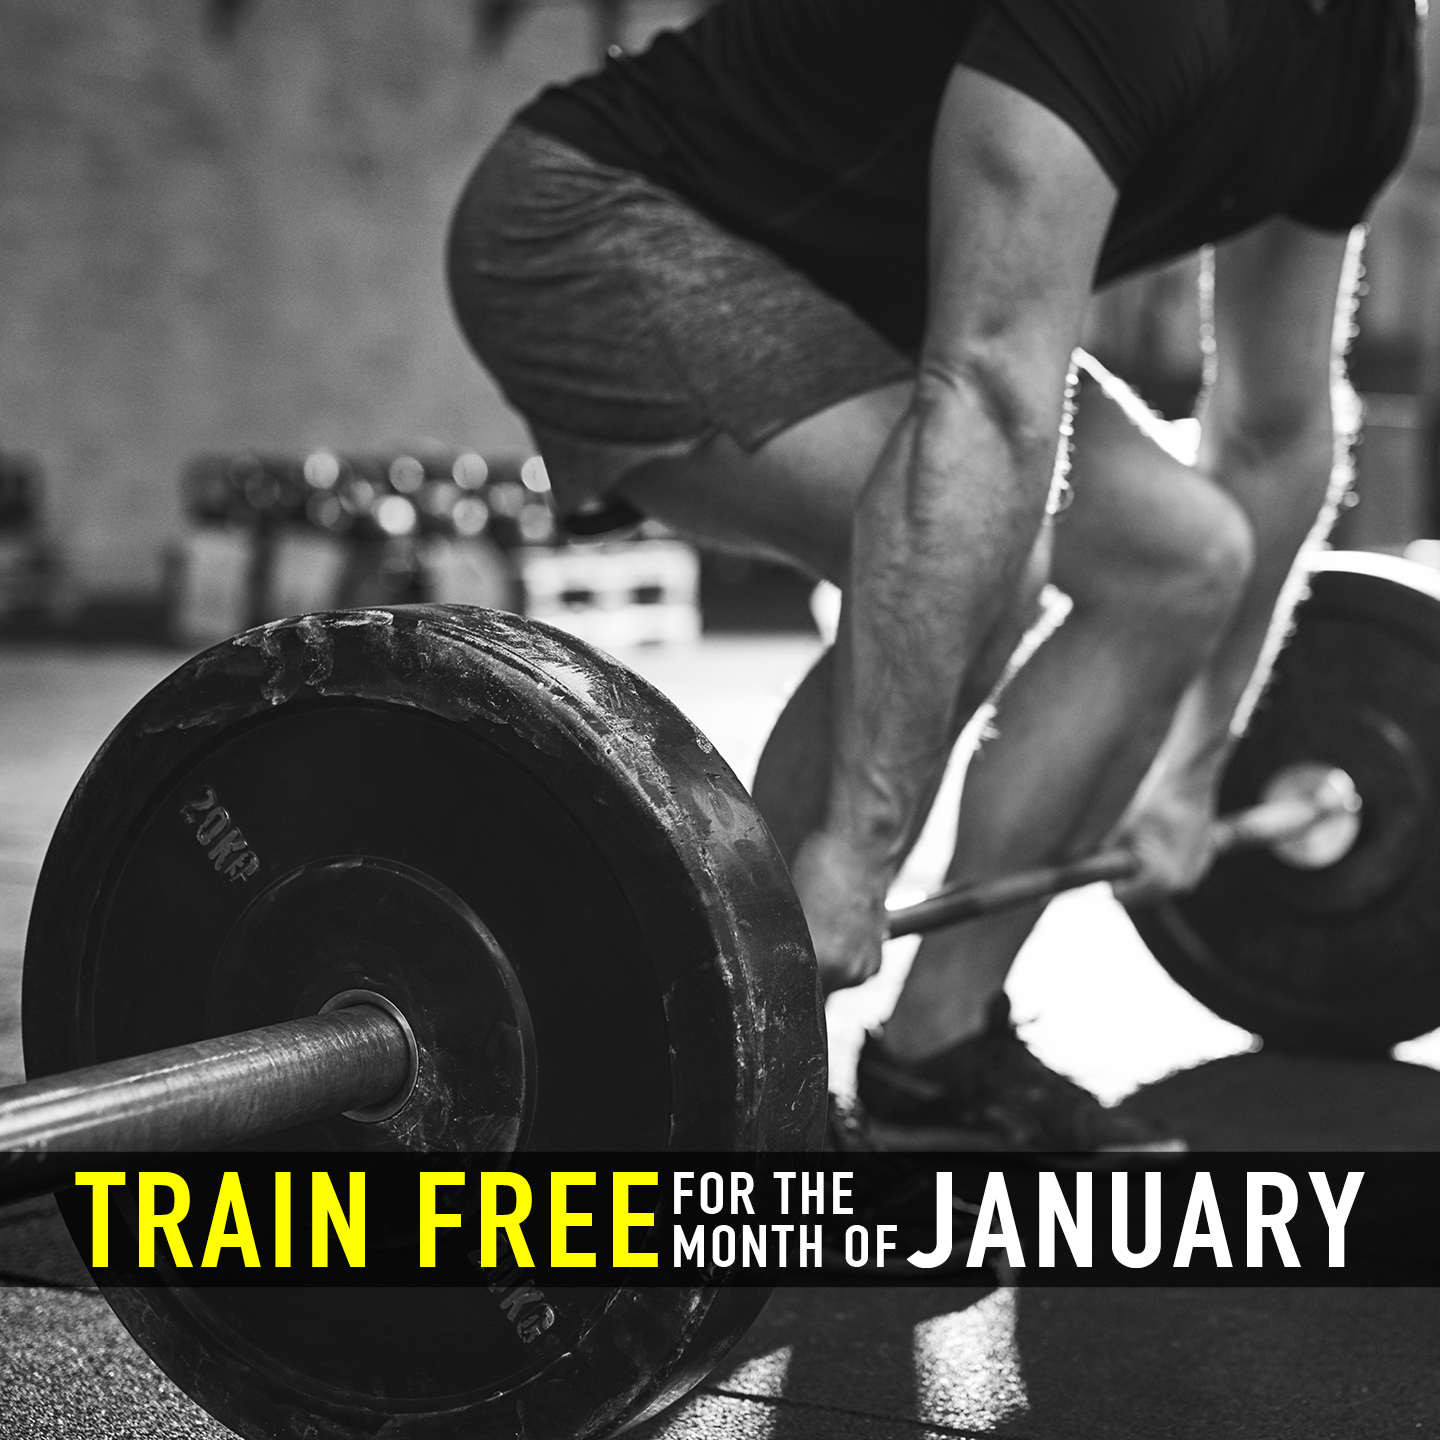 NQ-TRAINFREE-JANUARY2019-PROMO-square-ad-mens